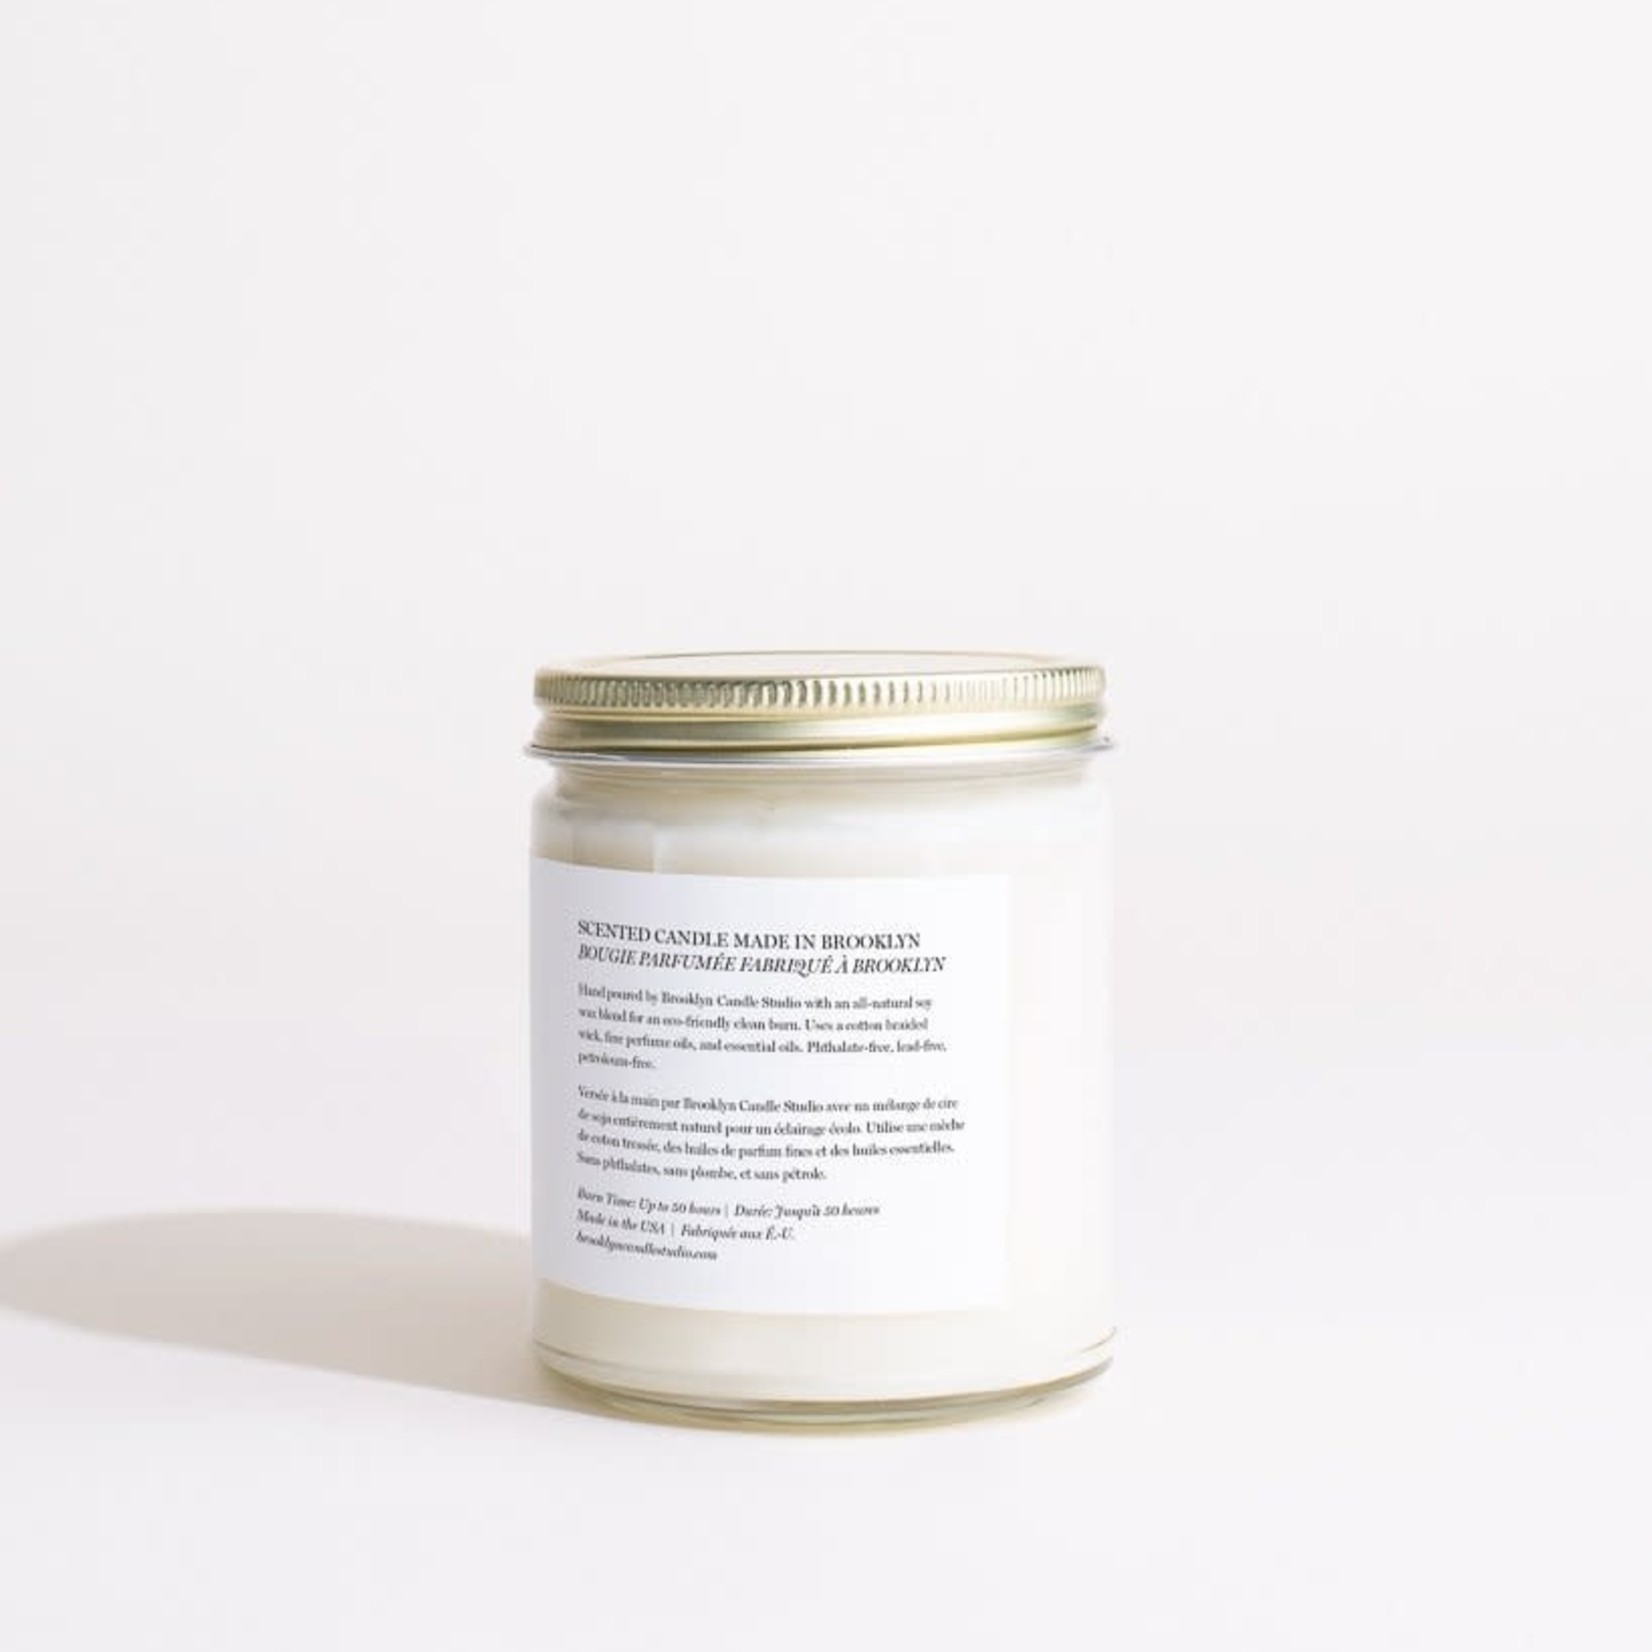 Brooklyn Candle Studio Brooklyn Candle Studio MONTANA FOREST Minimalist Jar Candle